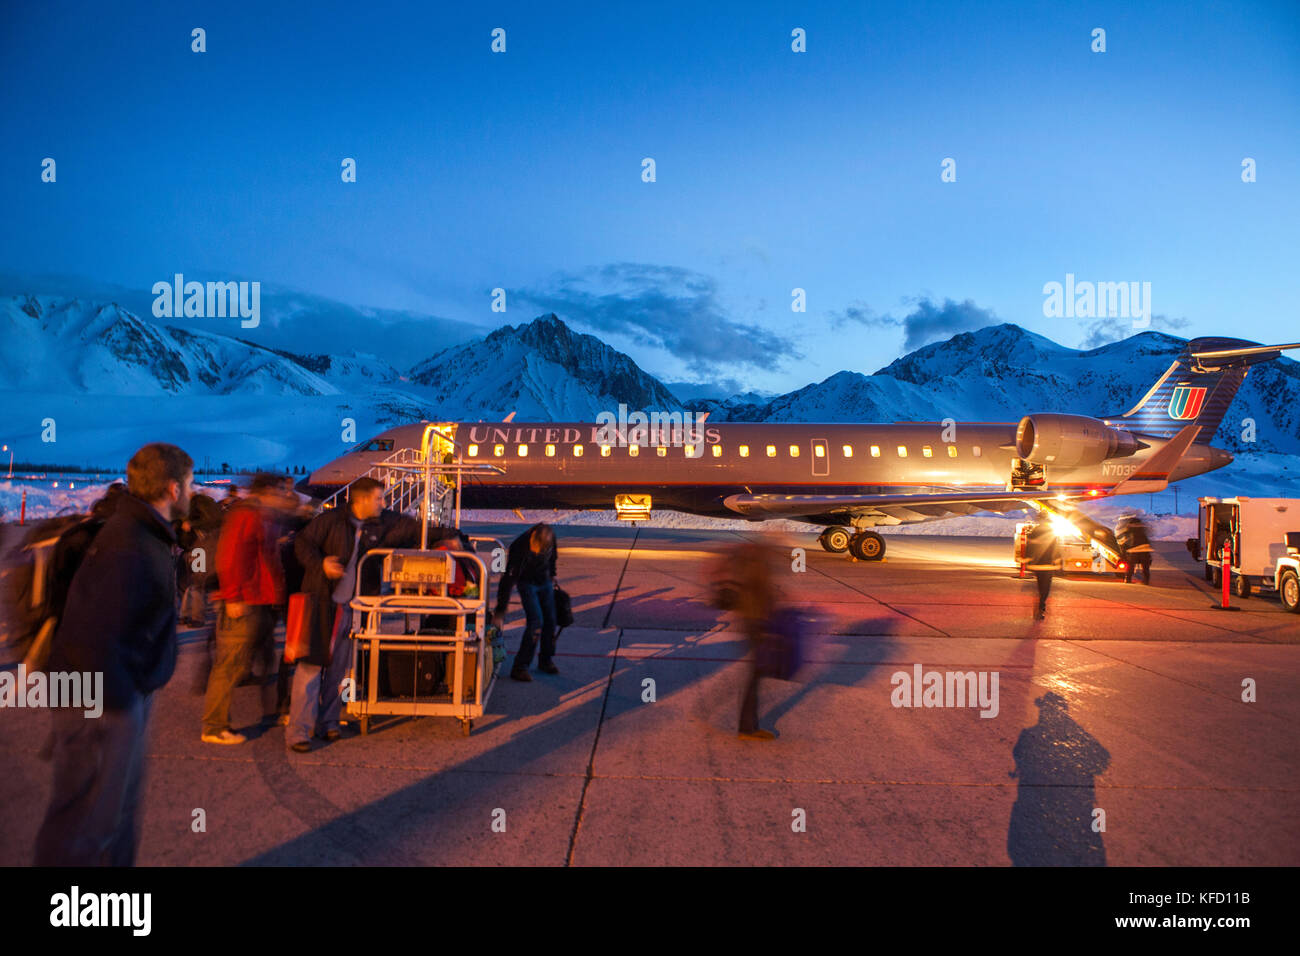 USA, California, Mammoth, exiting the plane just after sunset in Mammoth Lakes - Stock Image